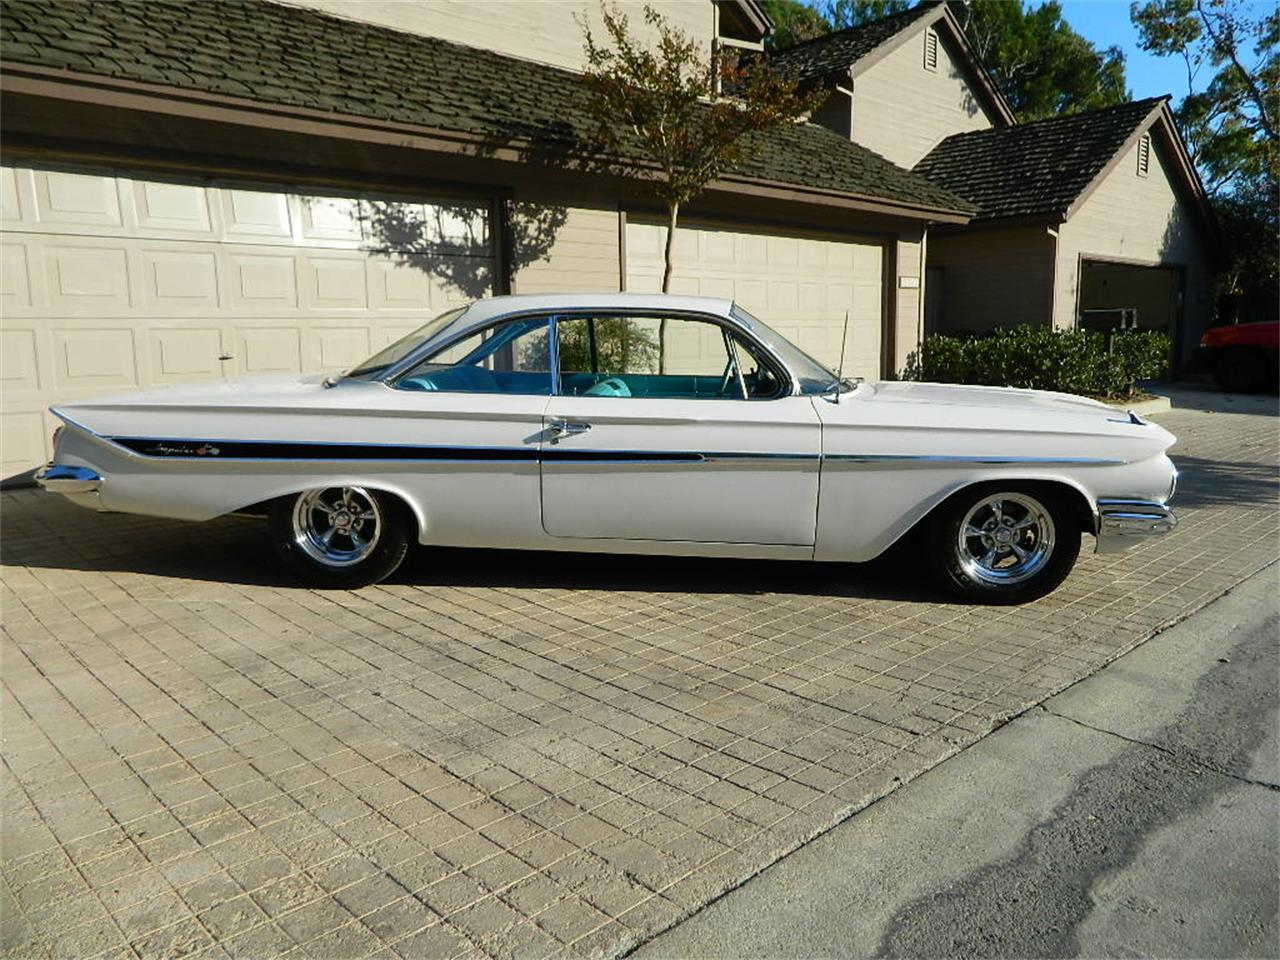 61 chevy impala convertible for sale